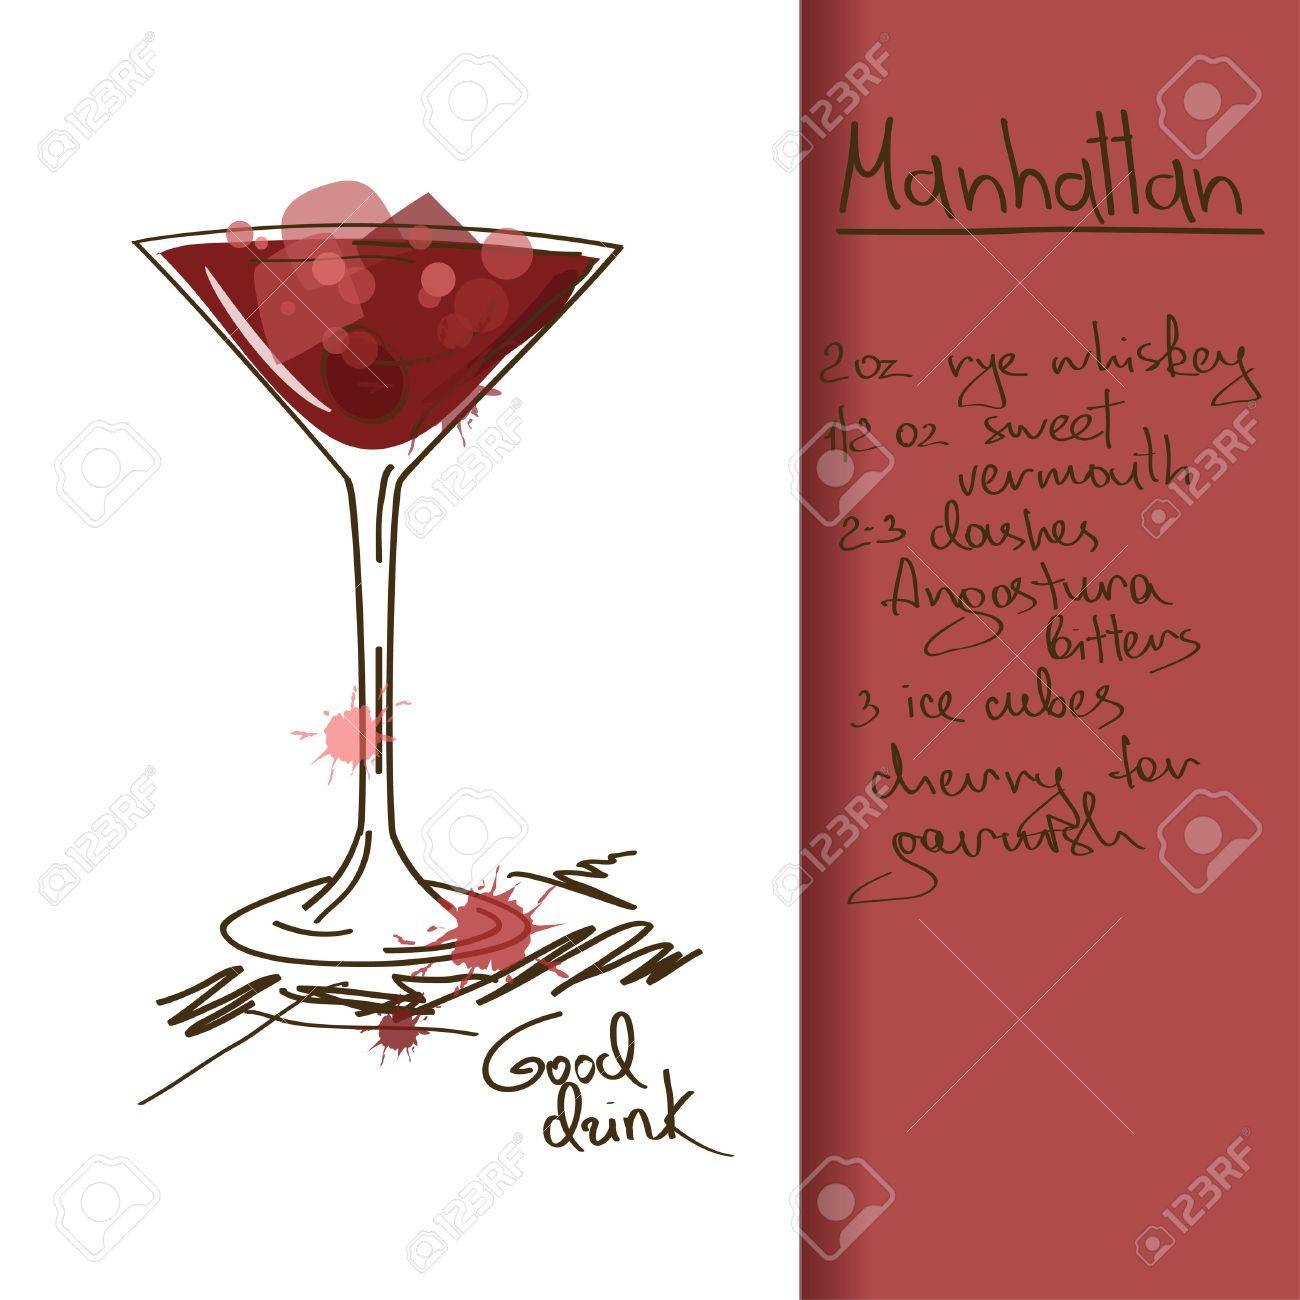 Illustration With Hand Drawn Manhattan Cocktail Royalty Free Cliparts Vectors And Stock Illustration Image 23499321